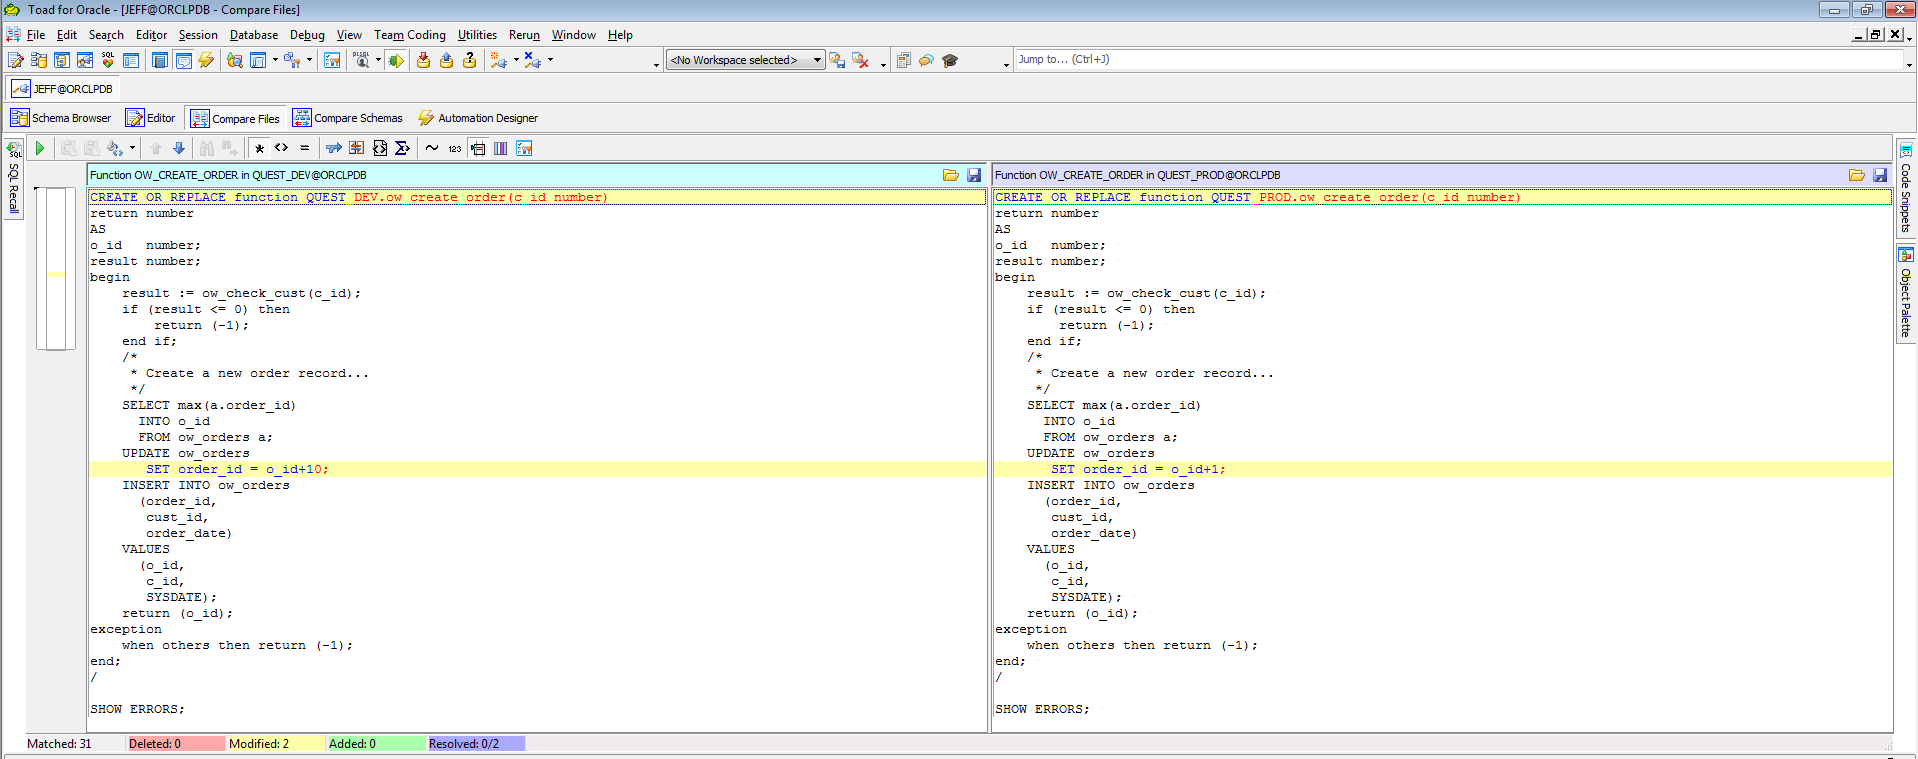 Screen shot of comparing and syncing database changes from one environment to another.